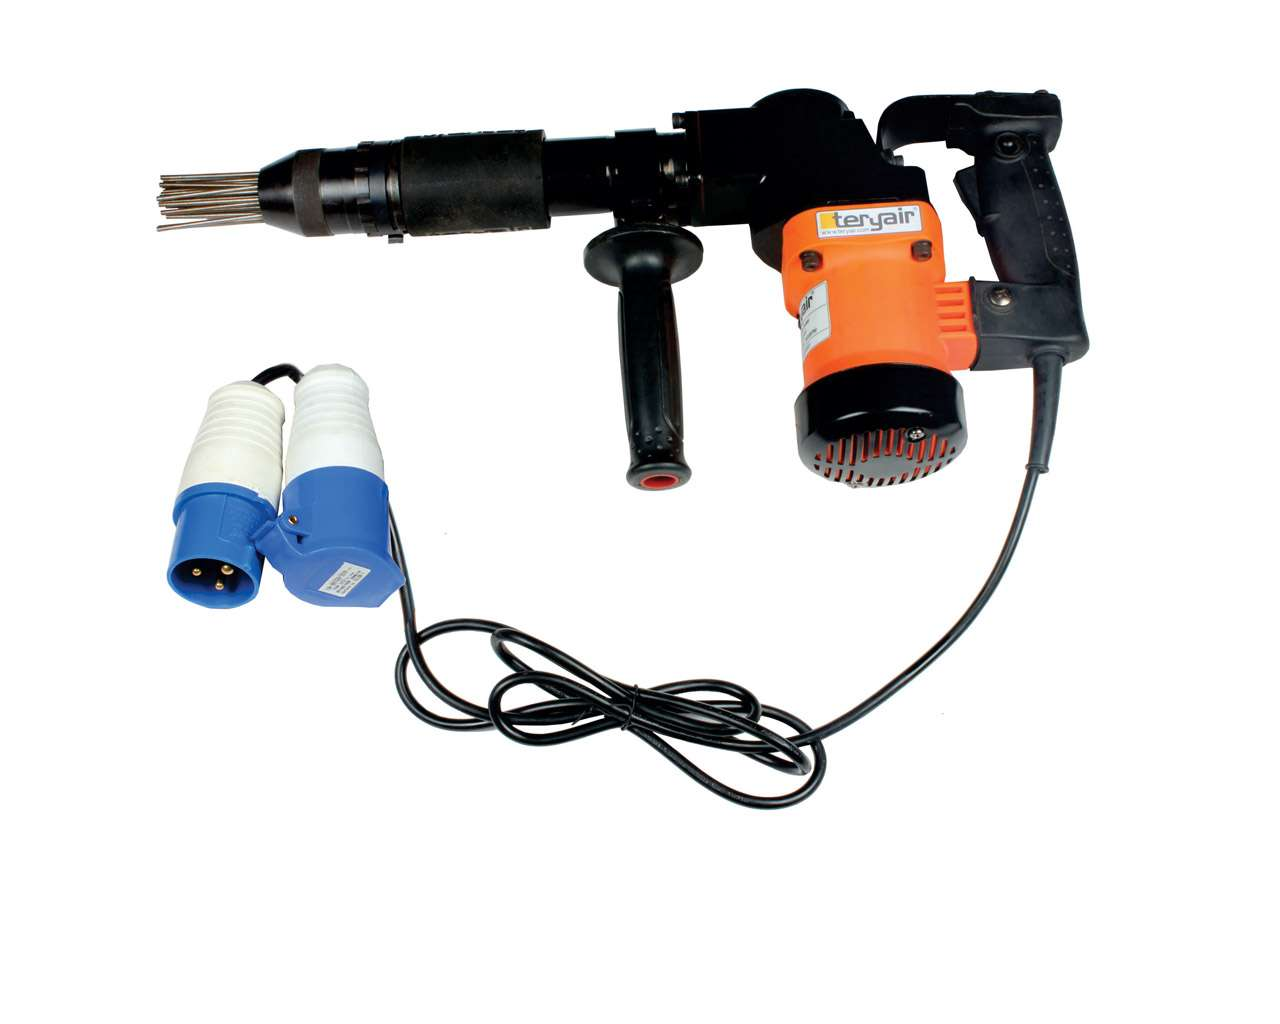 ENSXXX Electric Needle Gun